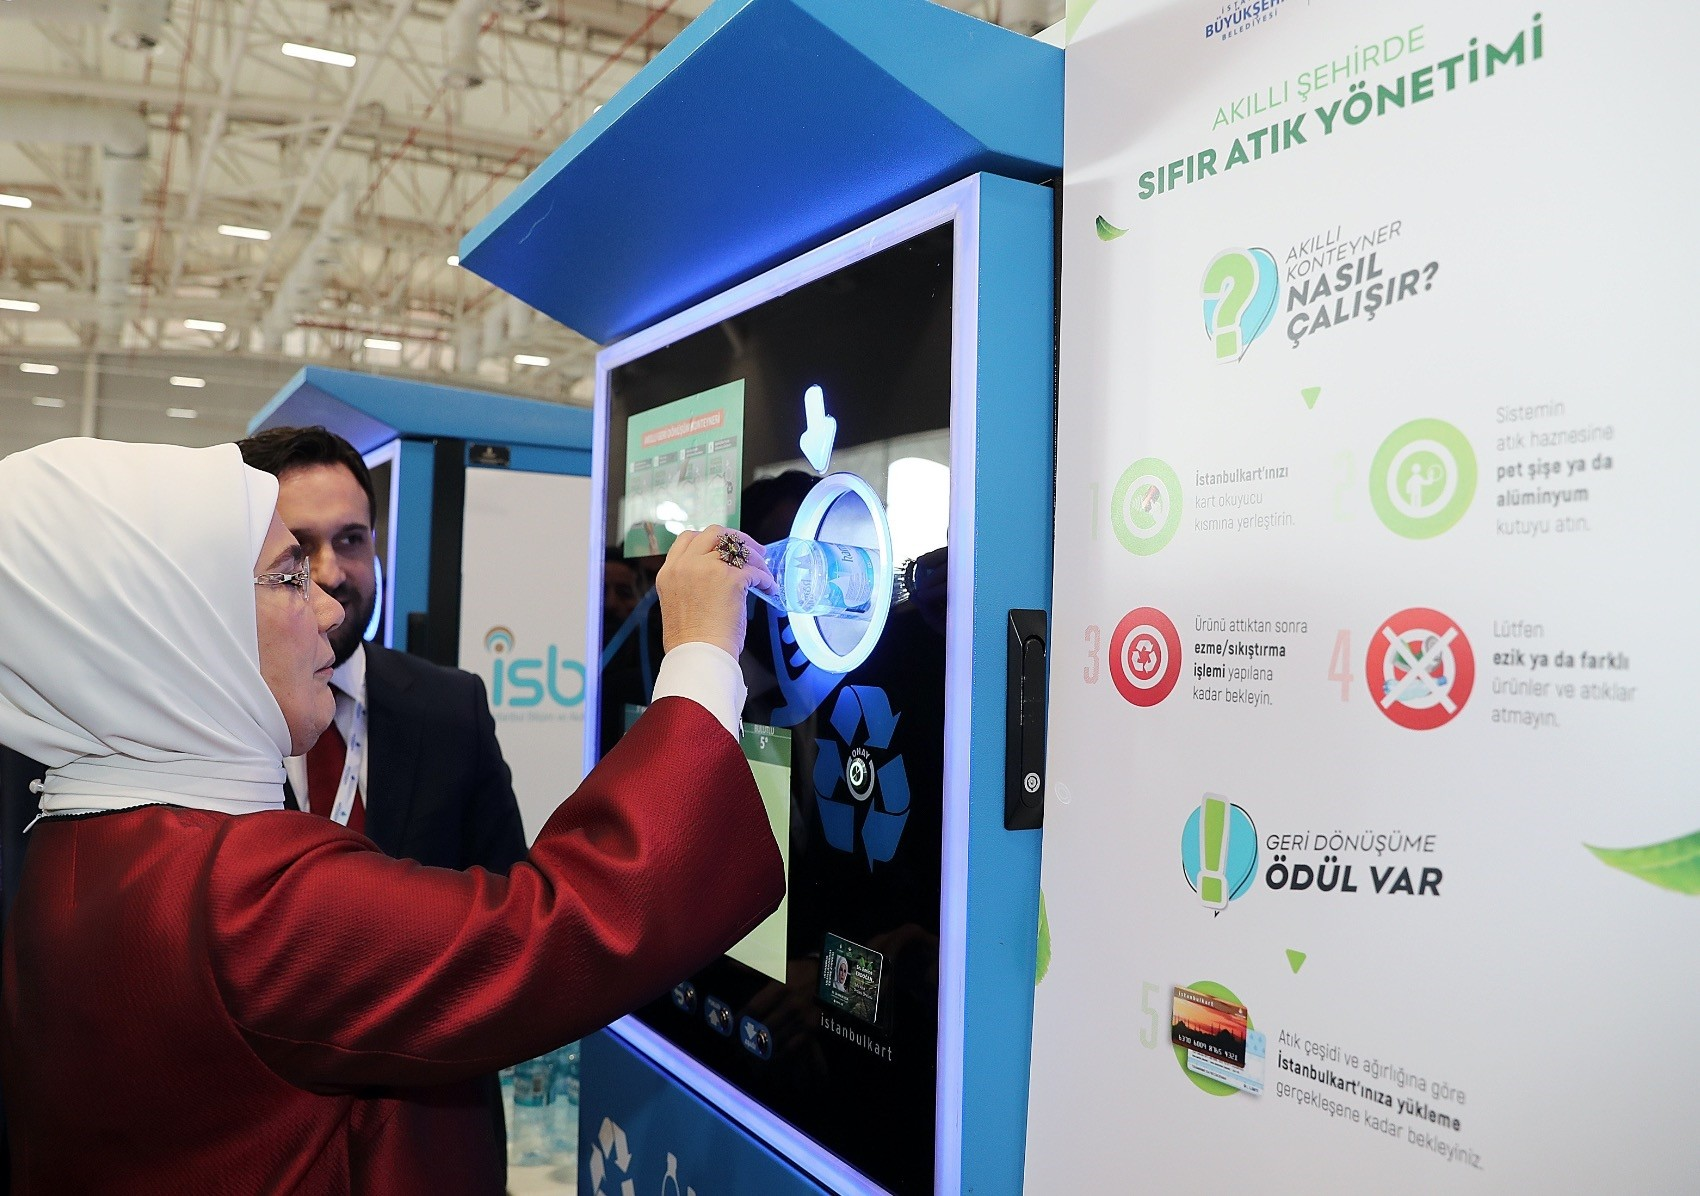 First lady Emine Erdou011fan deposits a plastic bottle to a u201csmart waste transfer machineu201d that gives mass transit credits in exchange for plastic bottles during an event on the environment in Istanbul in December.